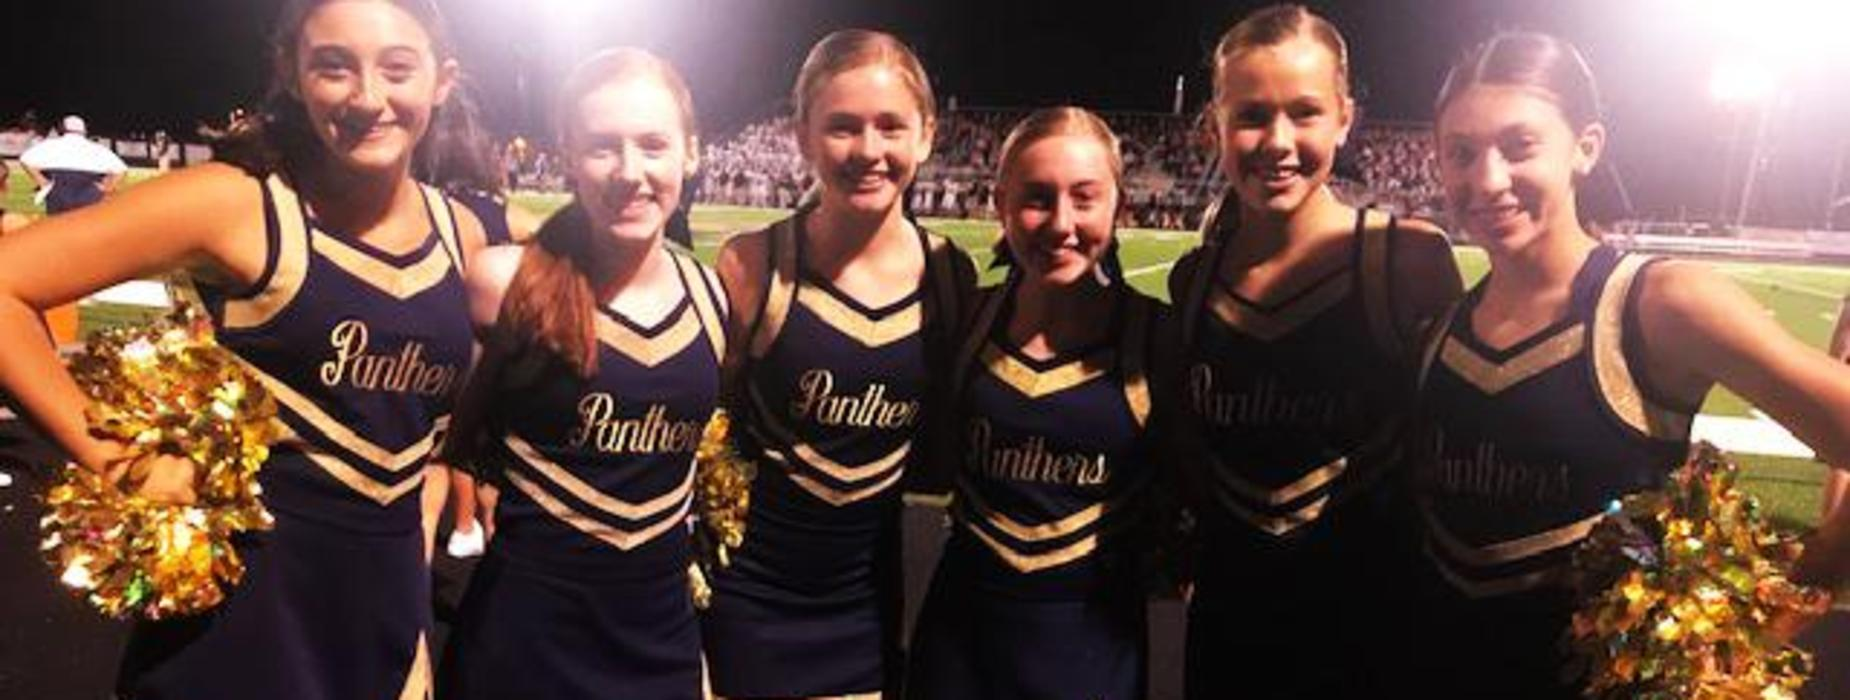 The FRMS Cheerleaders show their school spirit at the first home game!